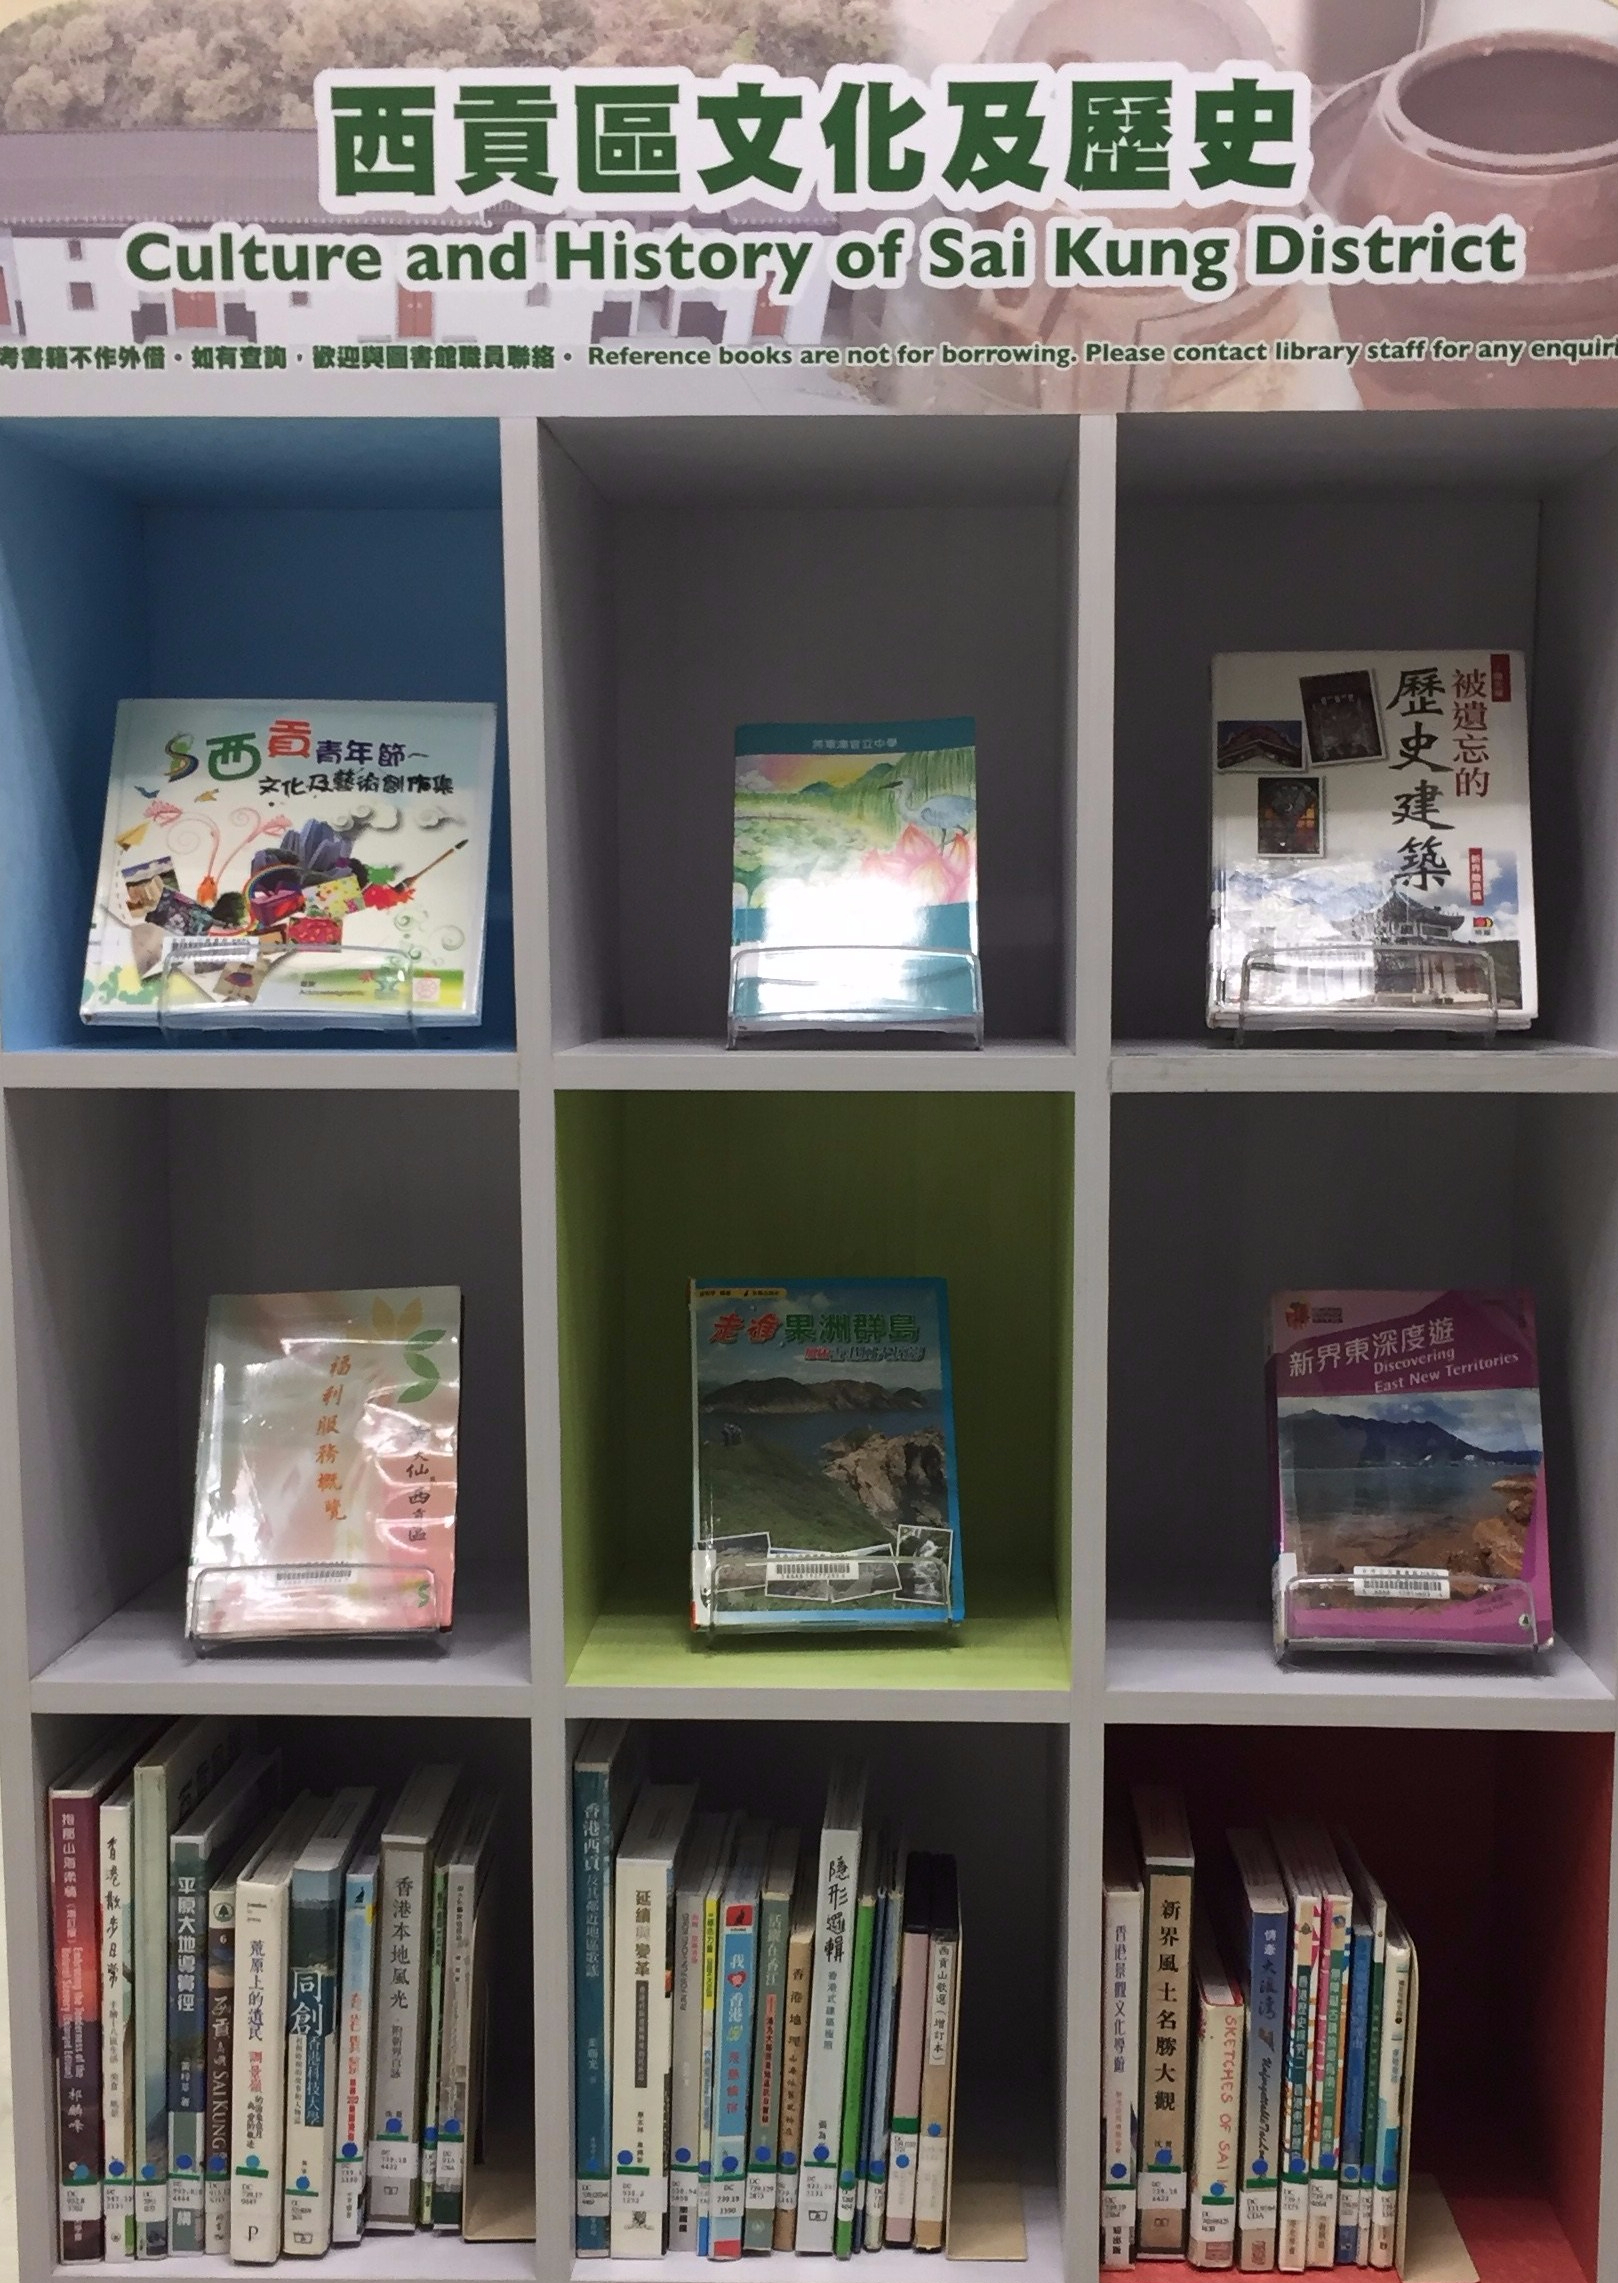 New books related to the Sai Kung District are on display